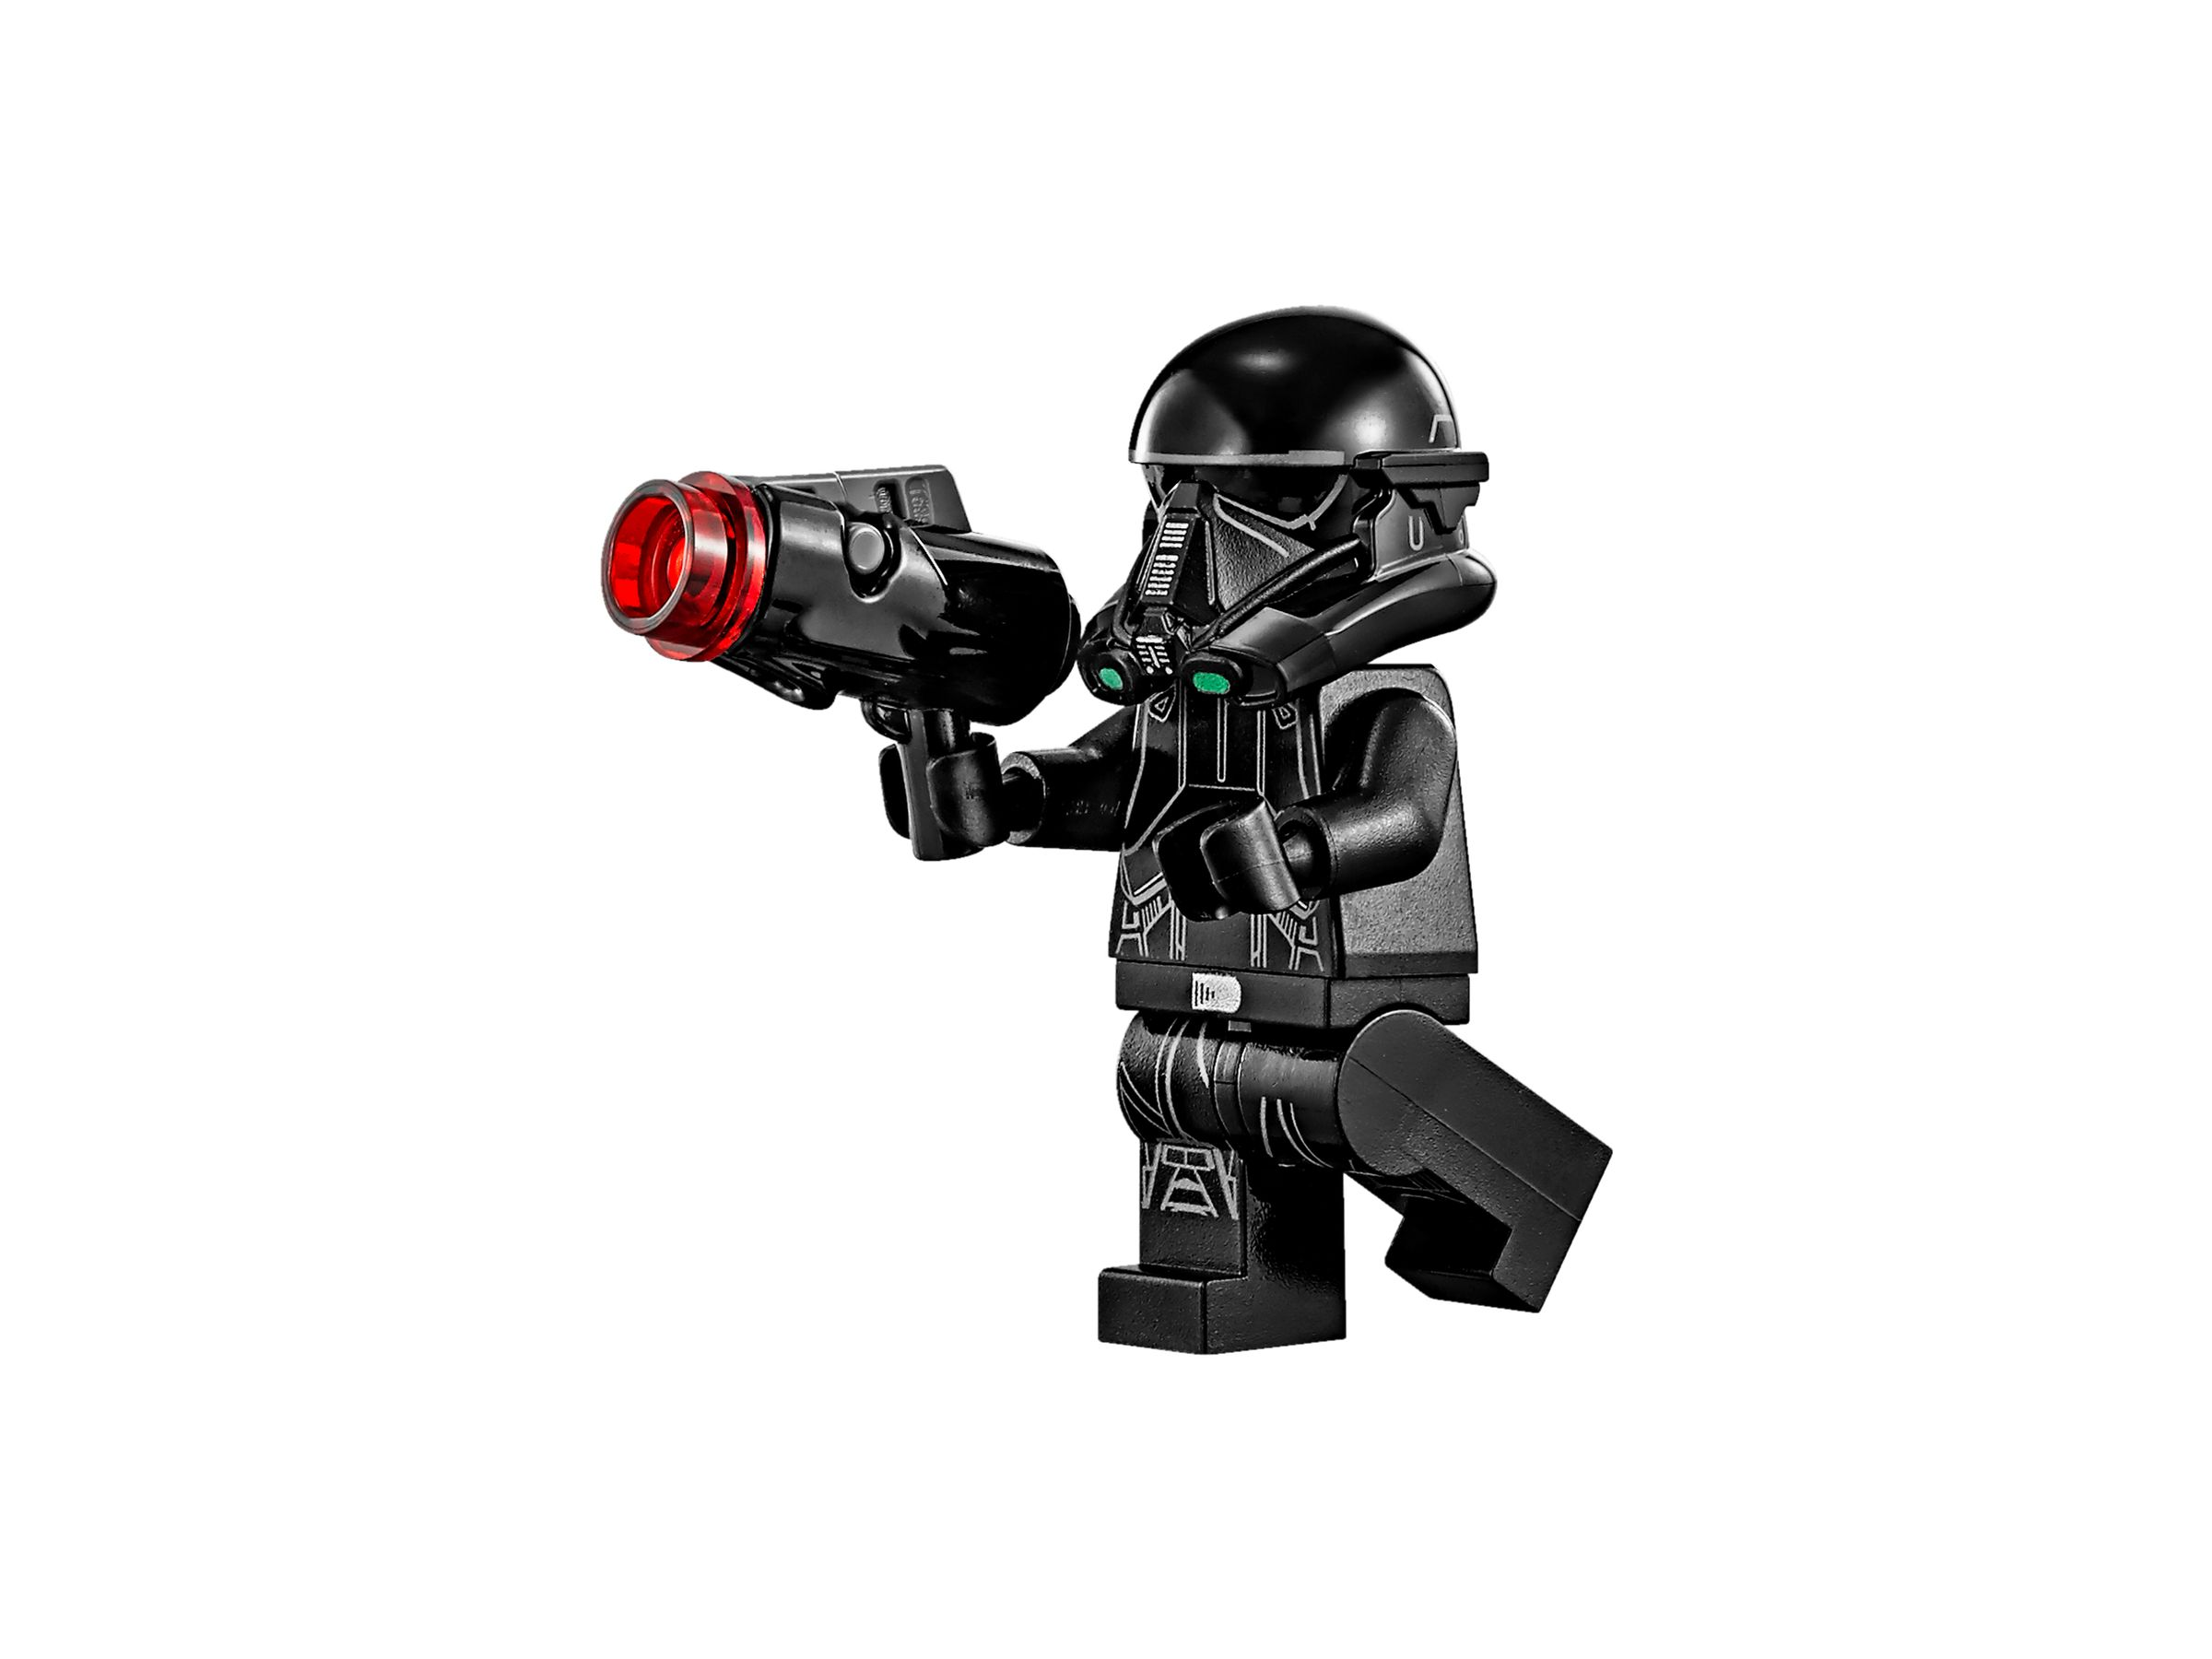 LEGO Star Wars 75165 Imperial Trooper Battle Pack LEGO_75165_alt5.jpg